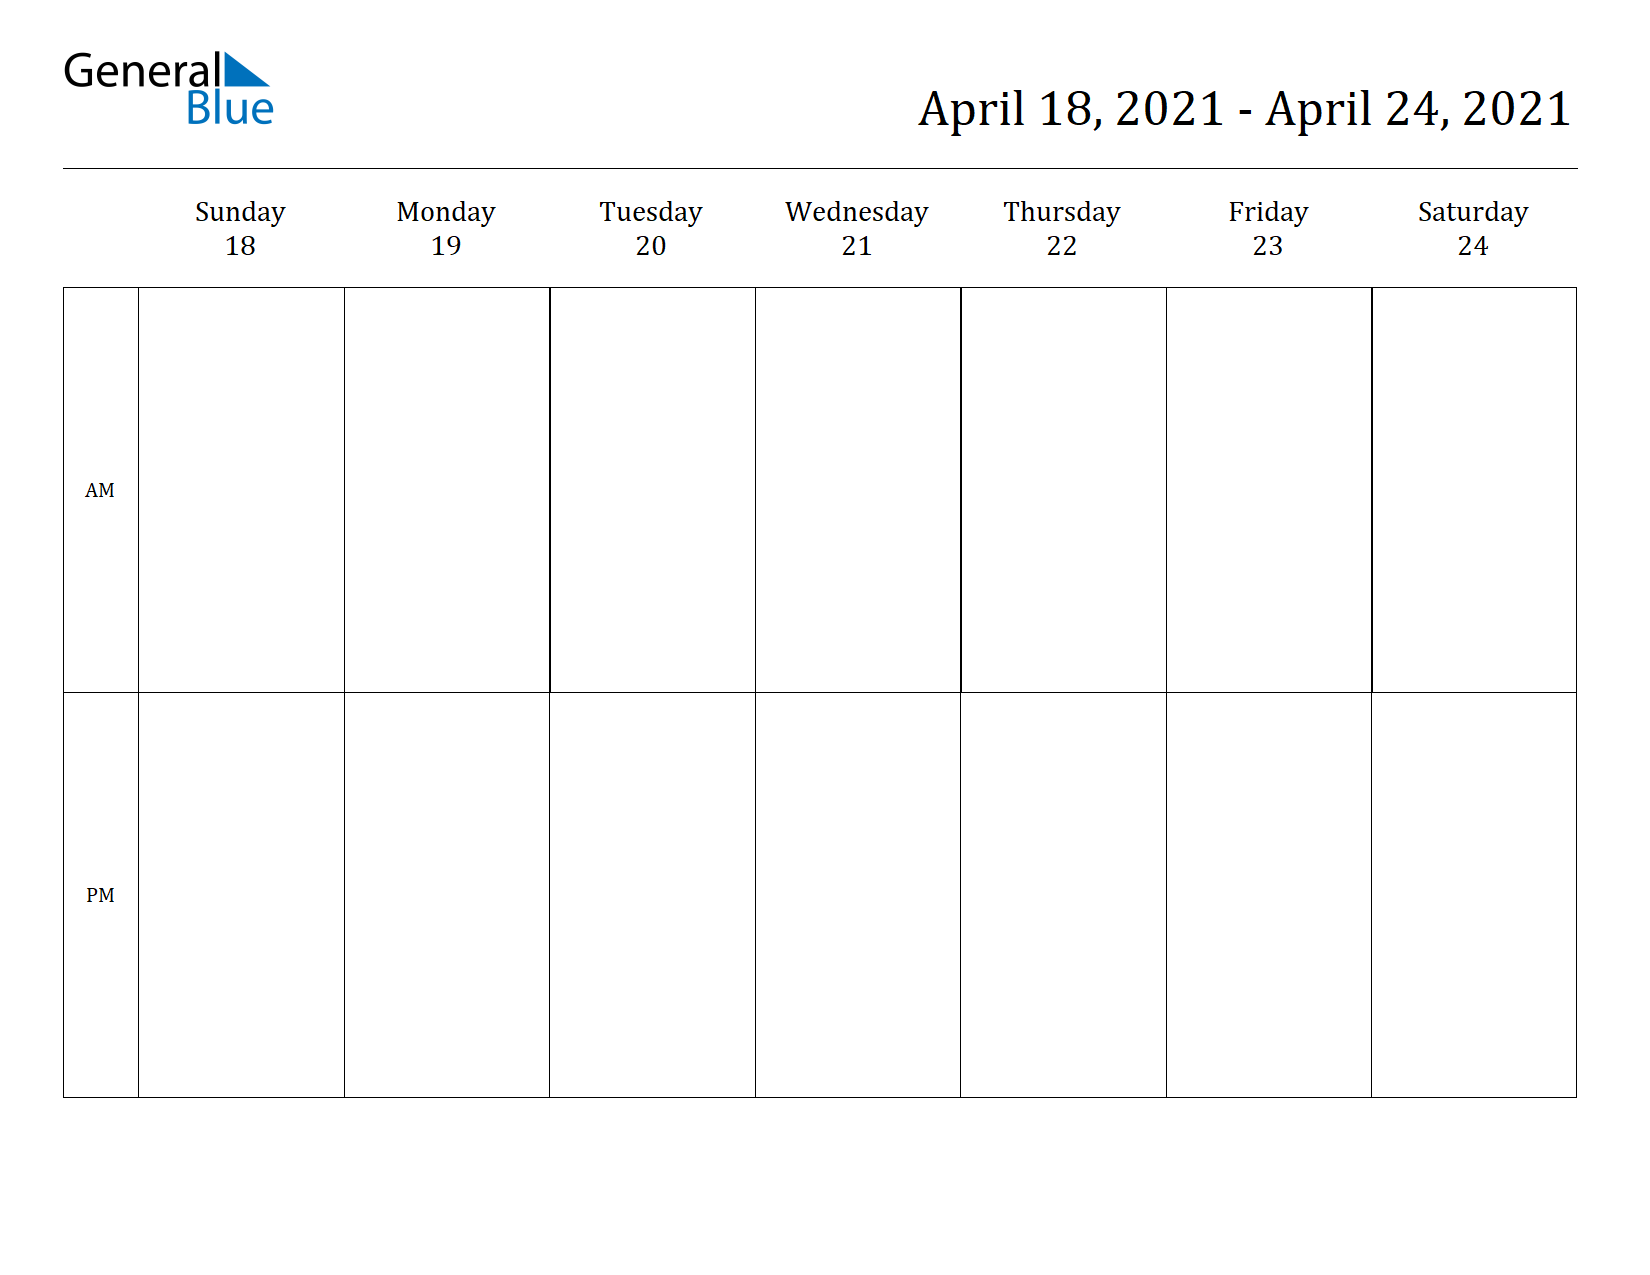 Weekly Calendar for Apr 18, 2021 to Apr 24, 2021